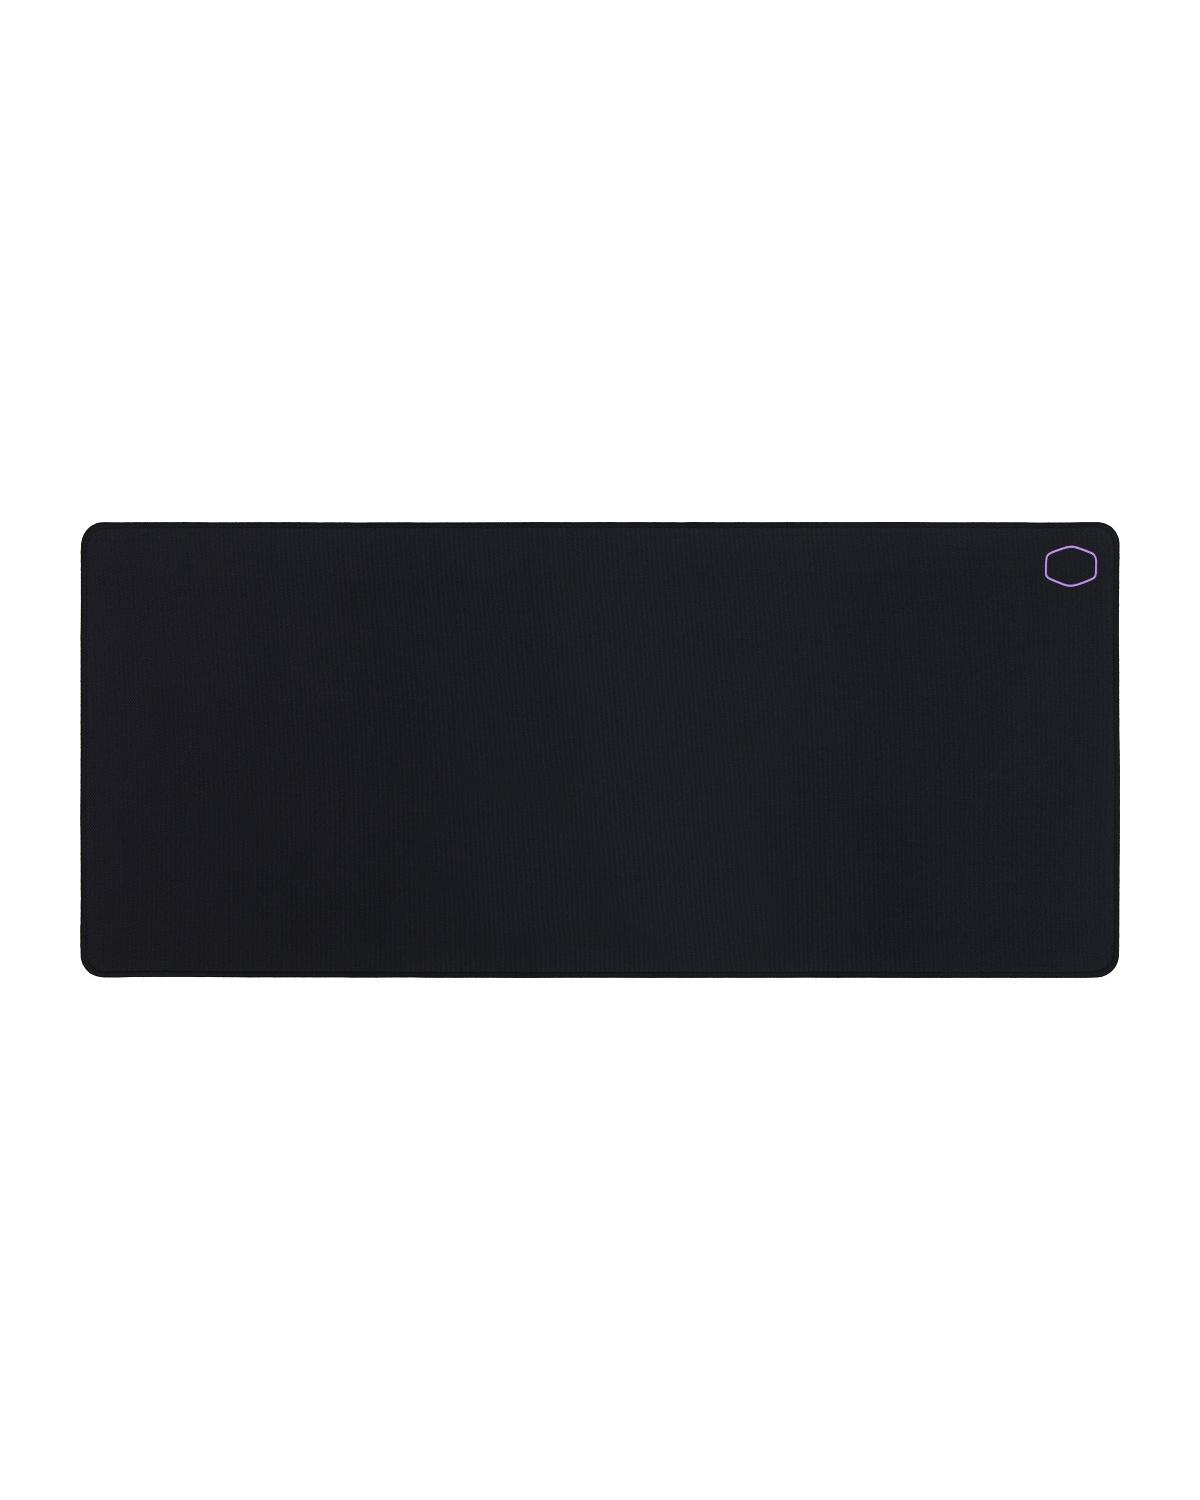 MOUSE PAD MP510 - EXTRA GRANDE 900*400*3MM - MPA-MP510-XL